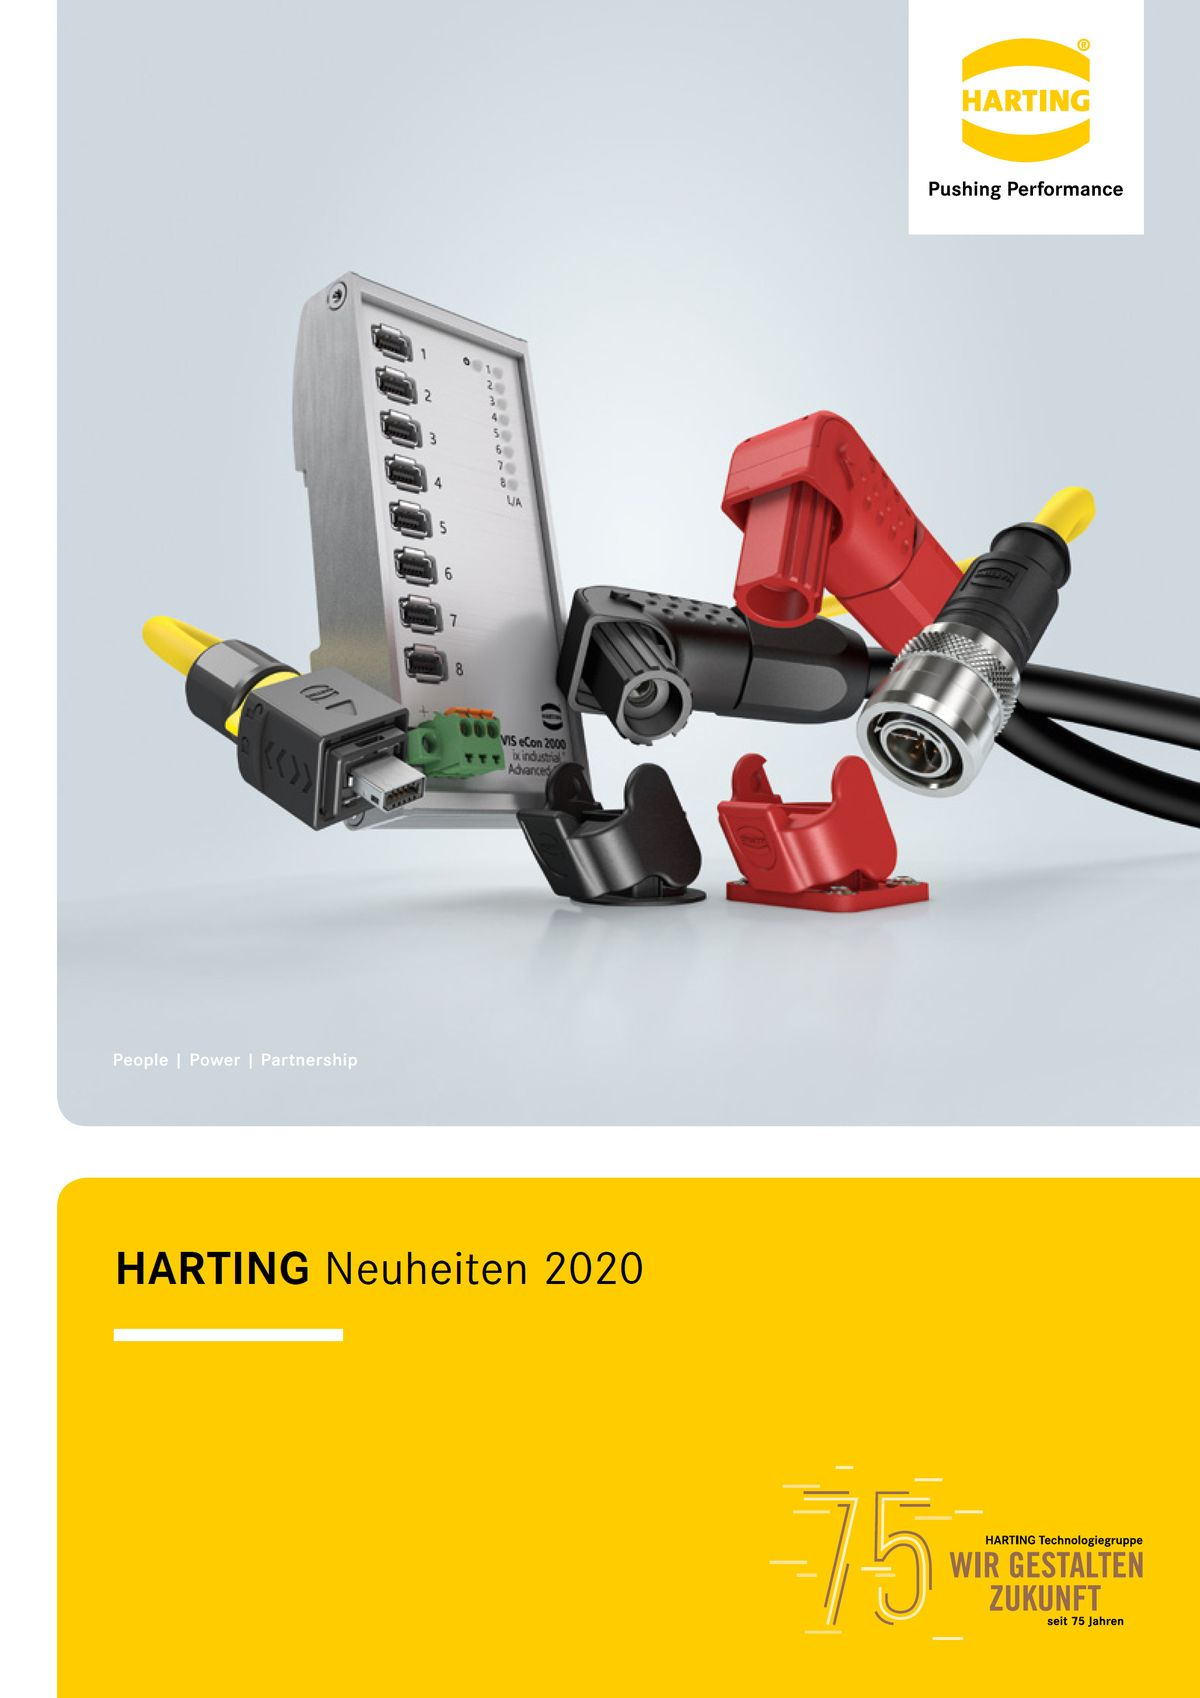 HARTING News 2020